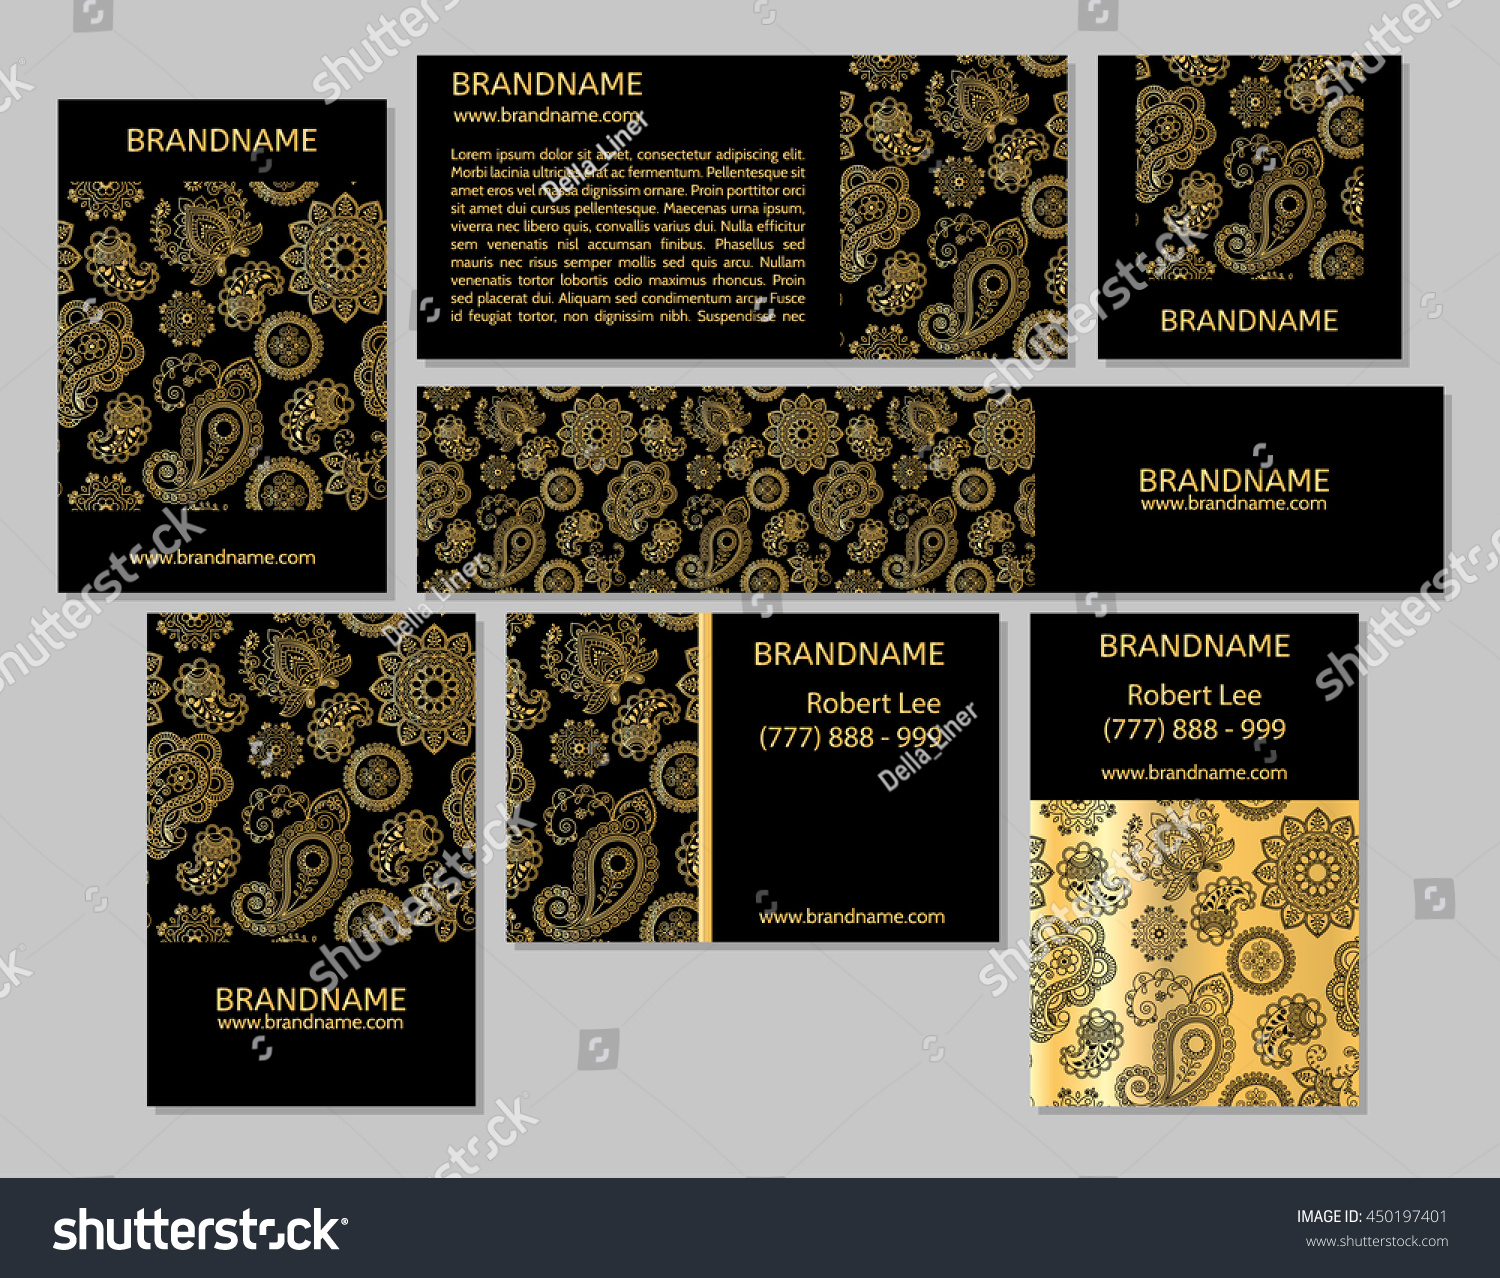 Vector set business cards flyers banners stock vector 450197401 vector set of business cards flyers banners with oriental pattern paisley and mandala modern magicingreecefo Images